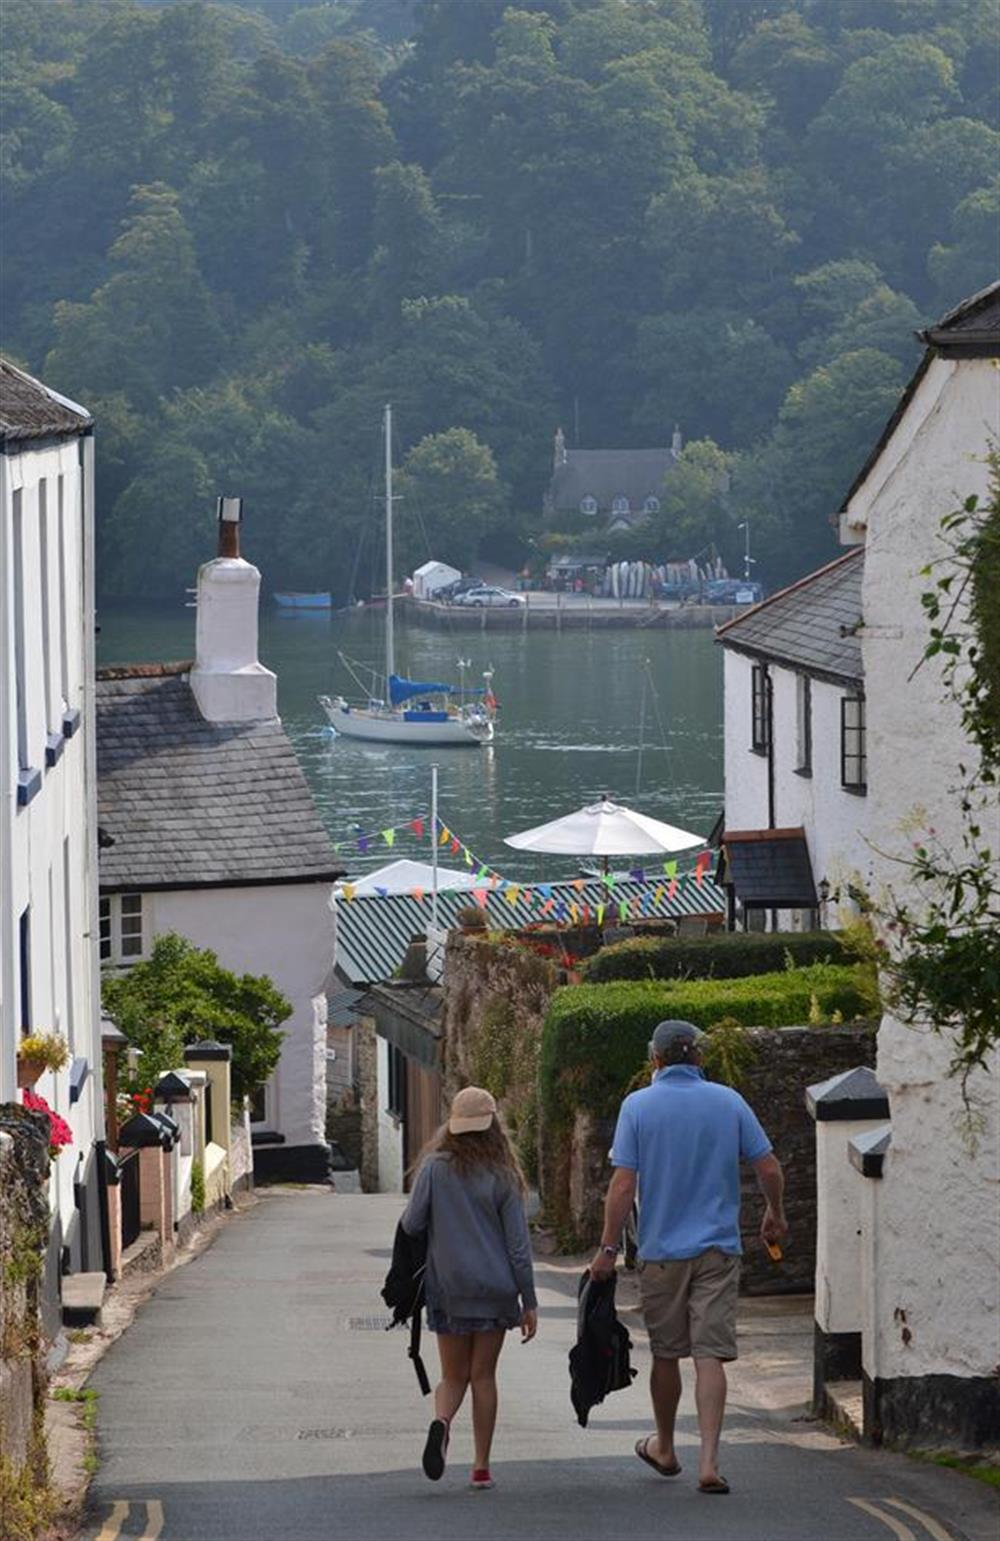 Dittisham village at Homelands, Dittisham